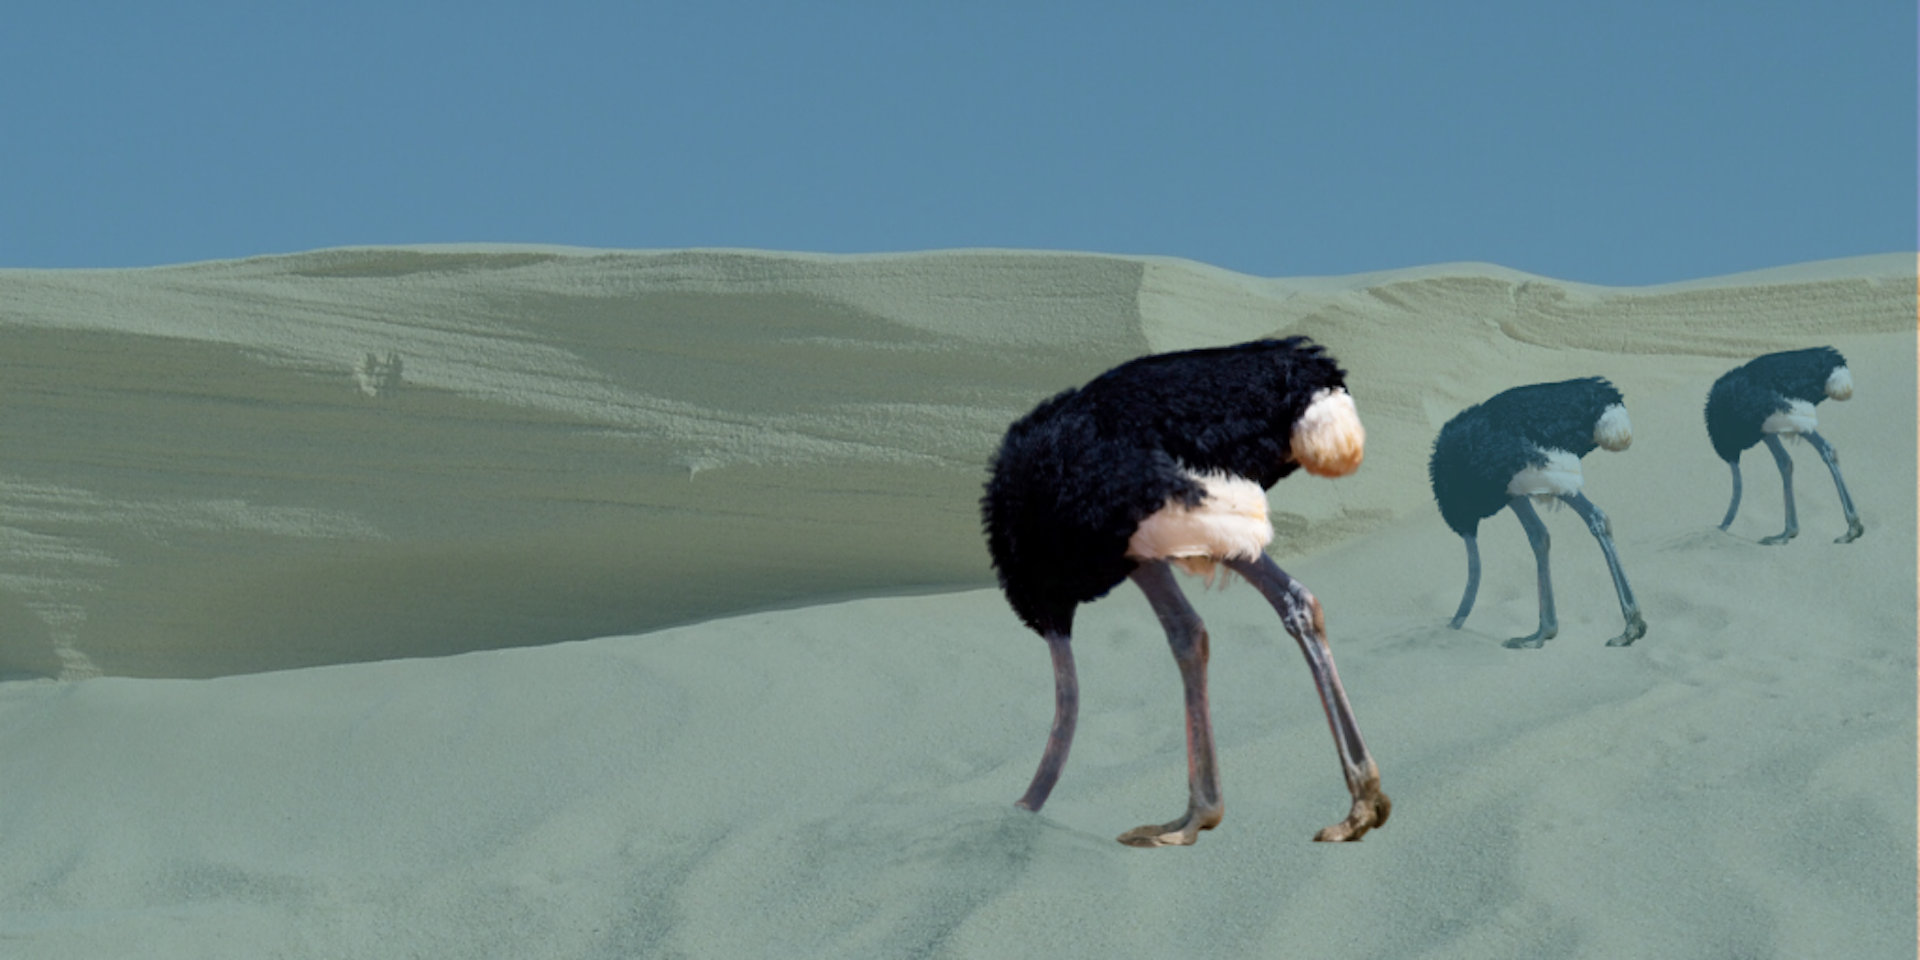 Three ostriches at various distances with their heads in the sand and a sand dune in the background